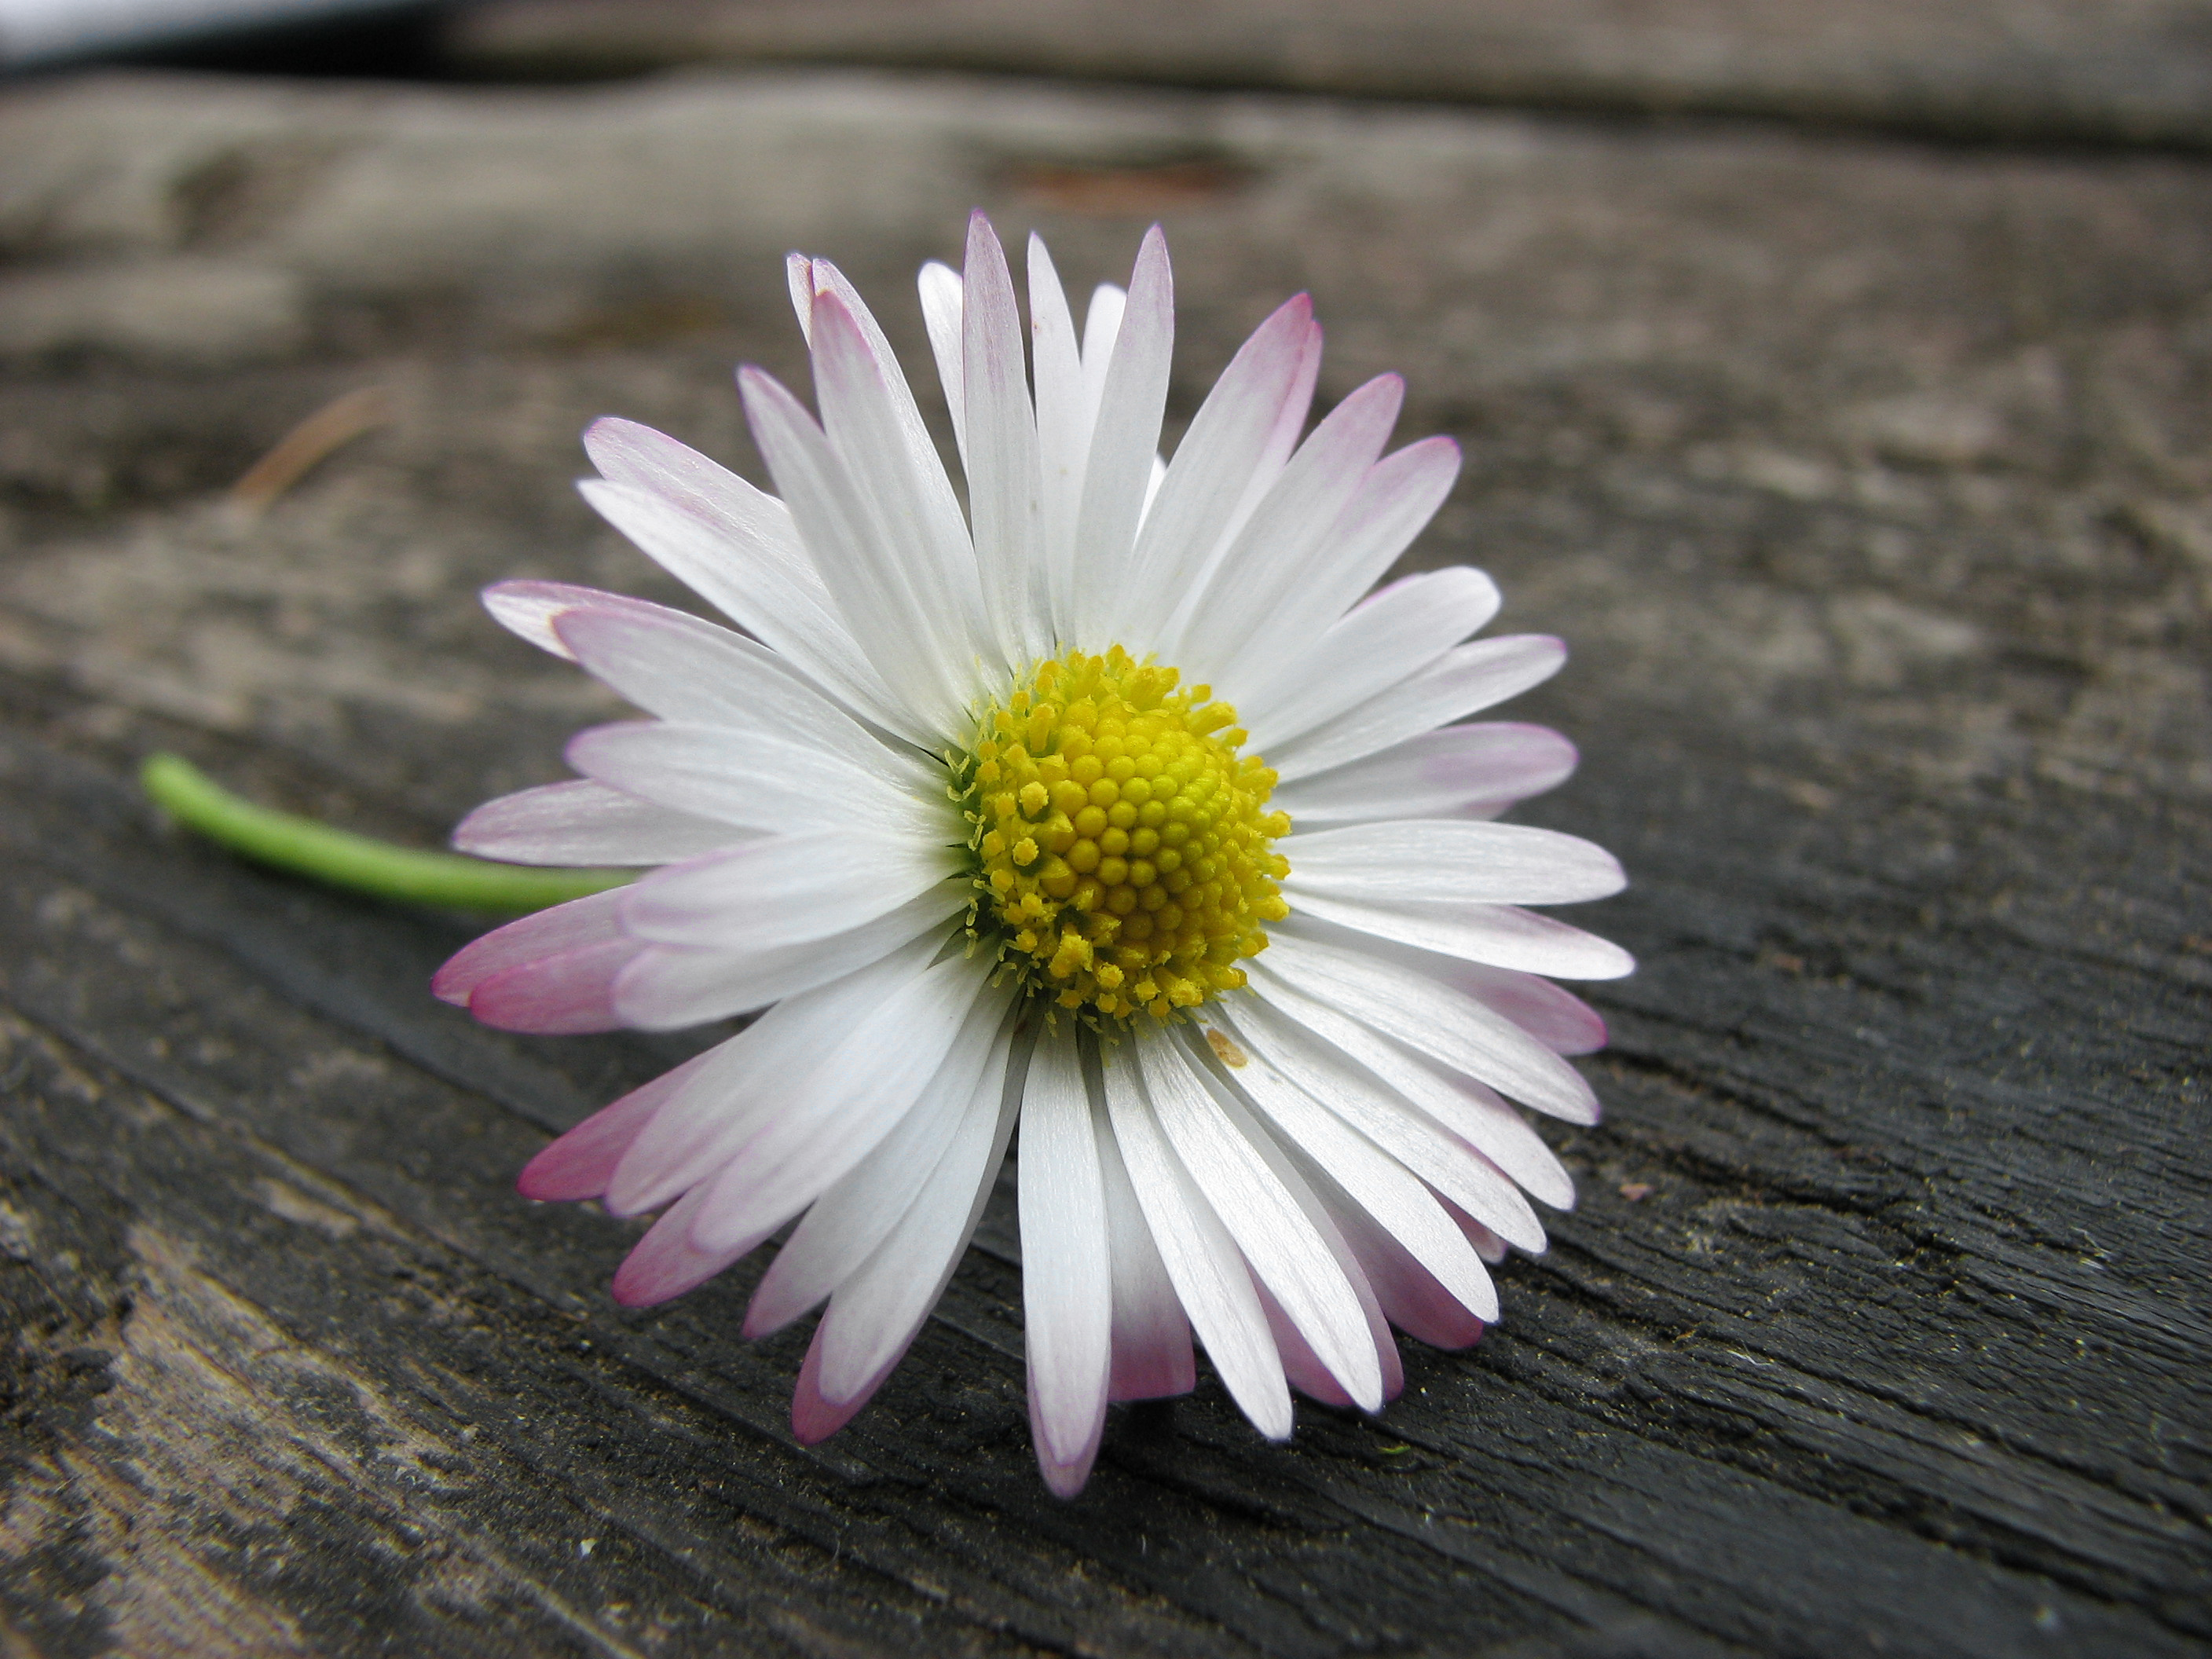 Http Commons Wikimedia Org Wiki File Pink Twinged Daisy On Table Edit Jpg